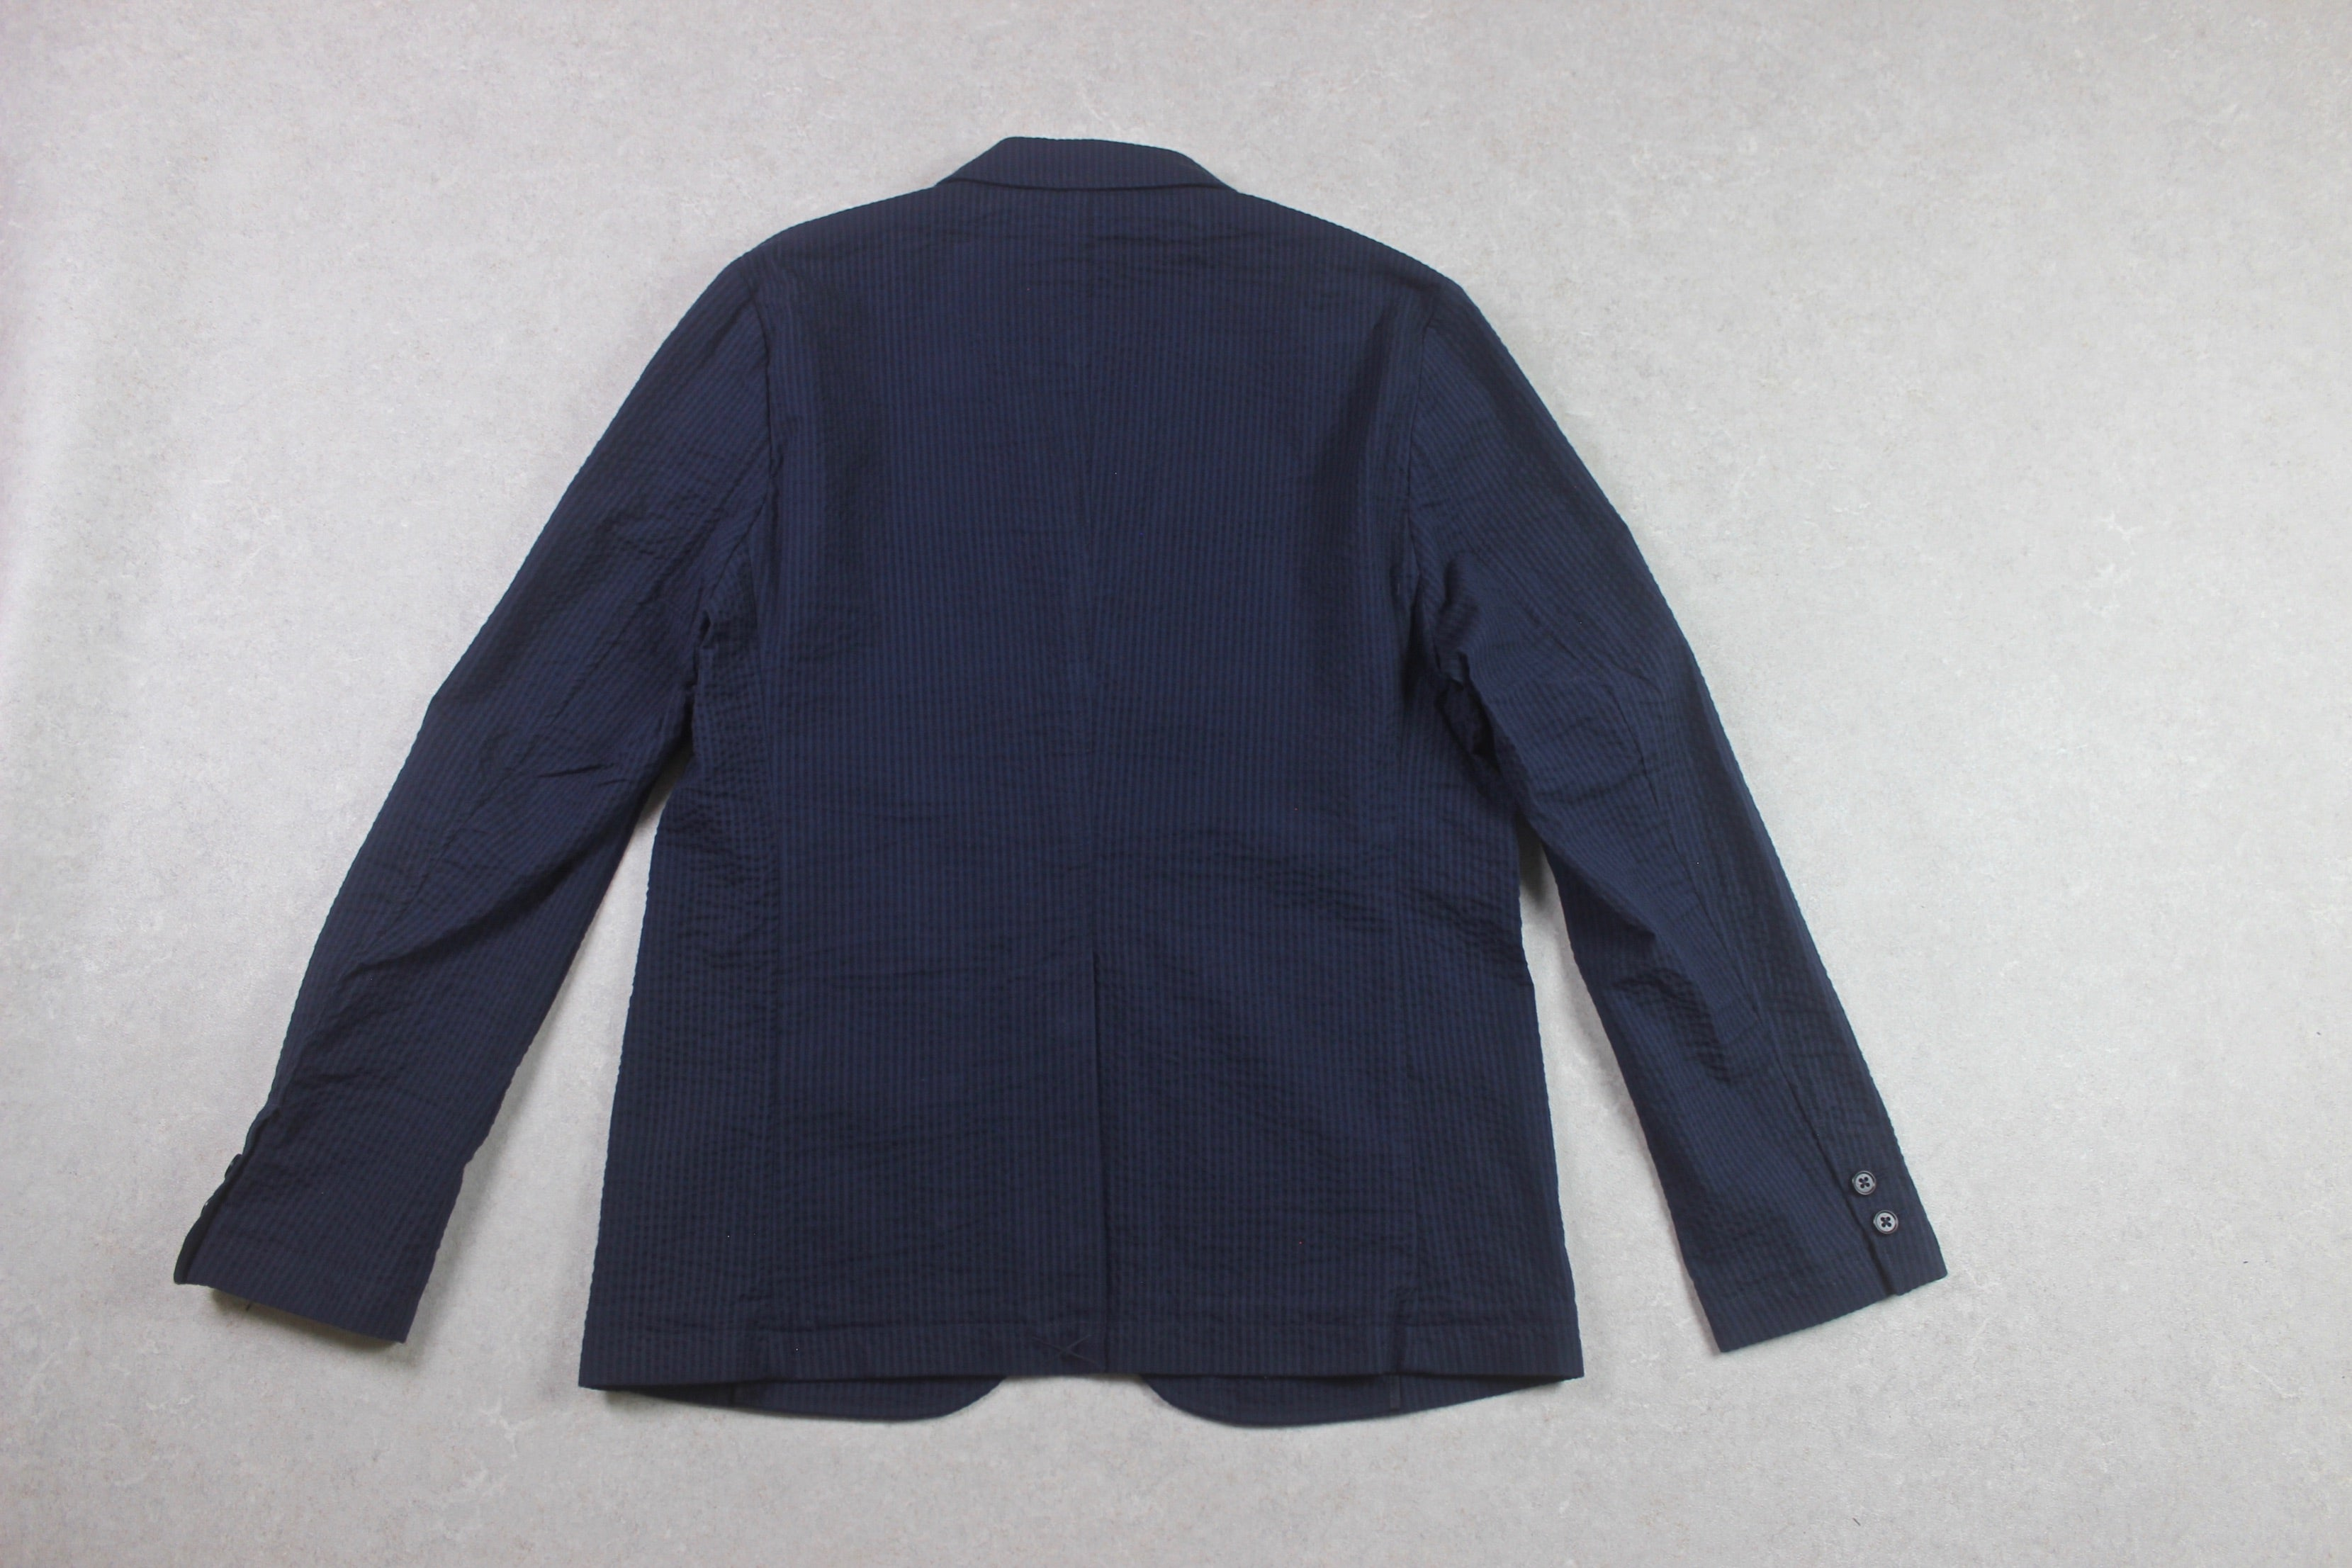 Folk - Seersucker Blazer Jacket - Navy Blue - 3/Medium - Brand New